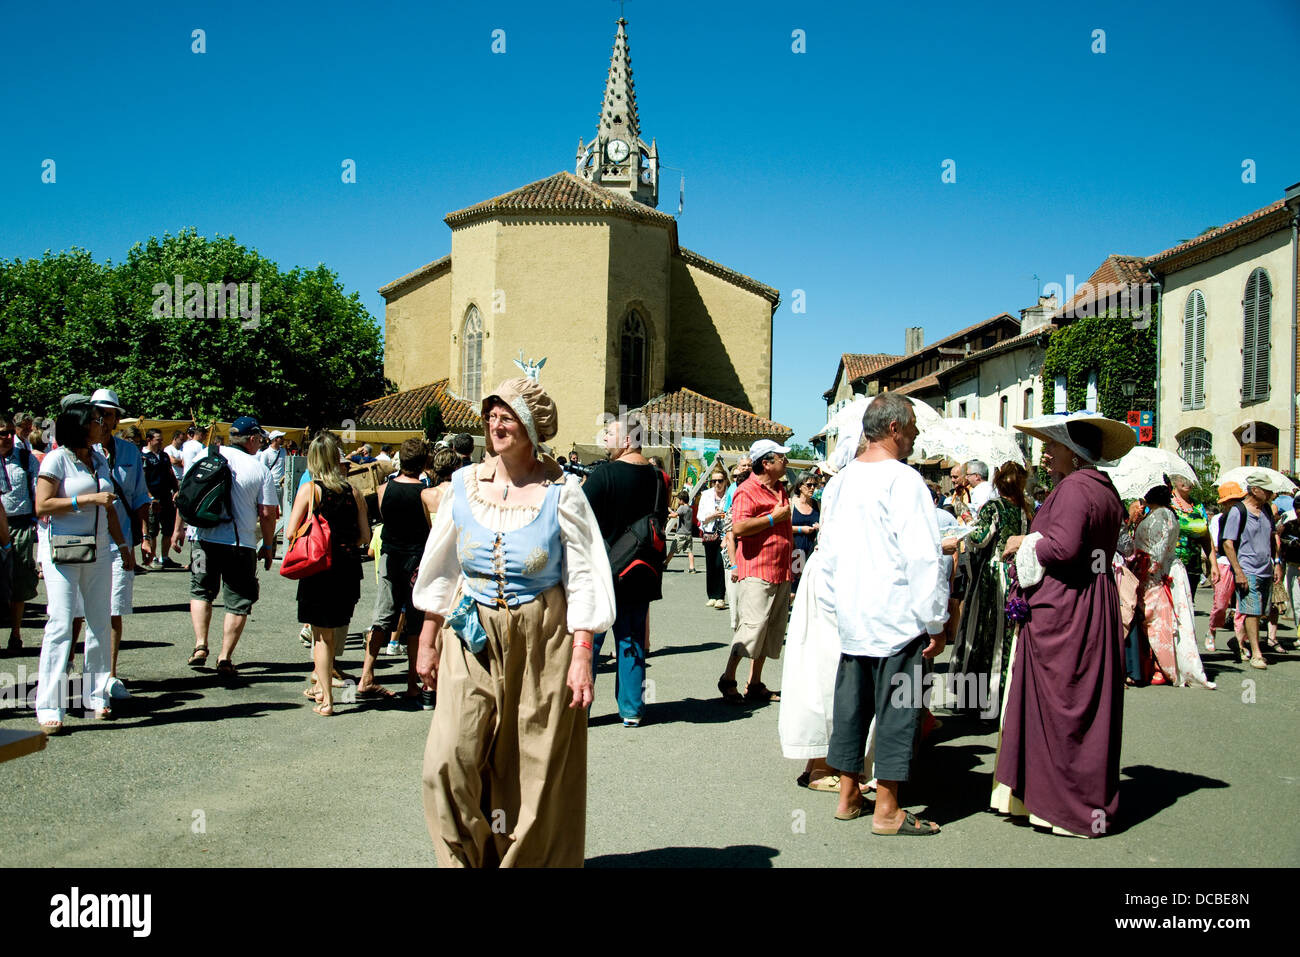 The central square of Lupiac, French village in the Gers, during a festival honoring native son D'Artagnan - Stock Image